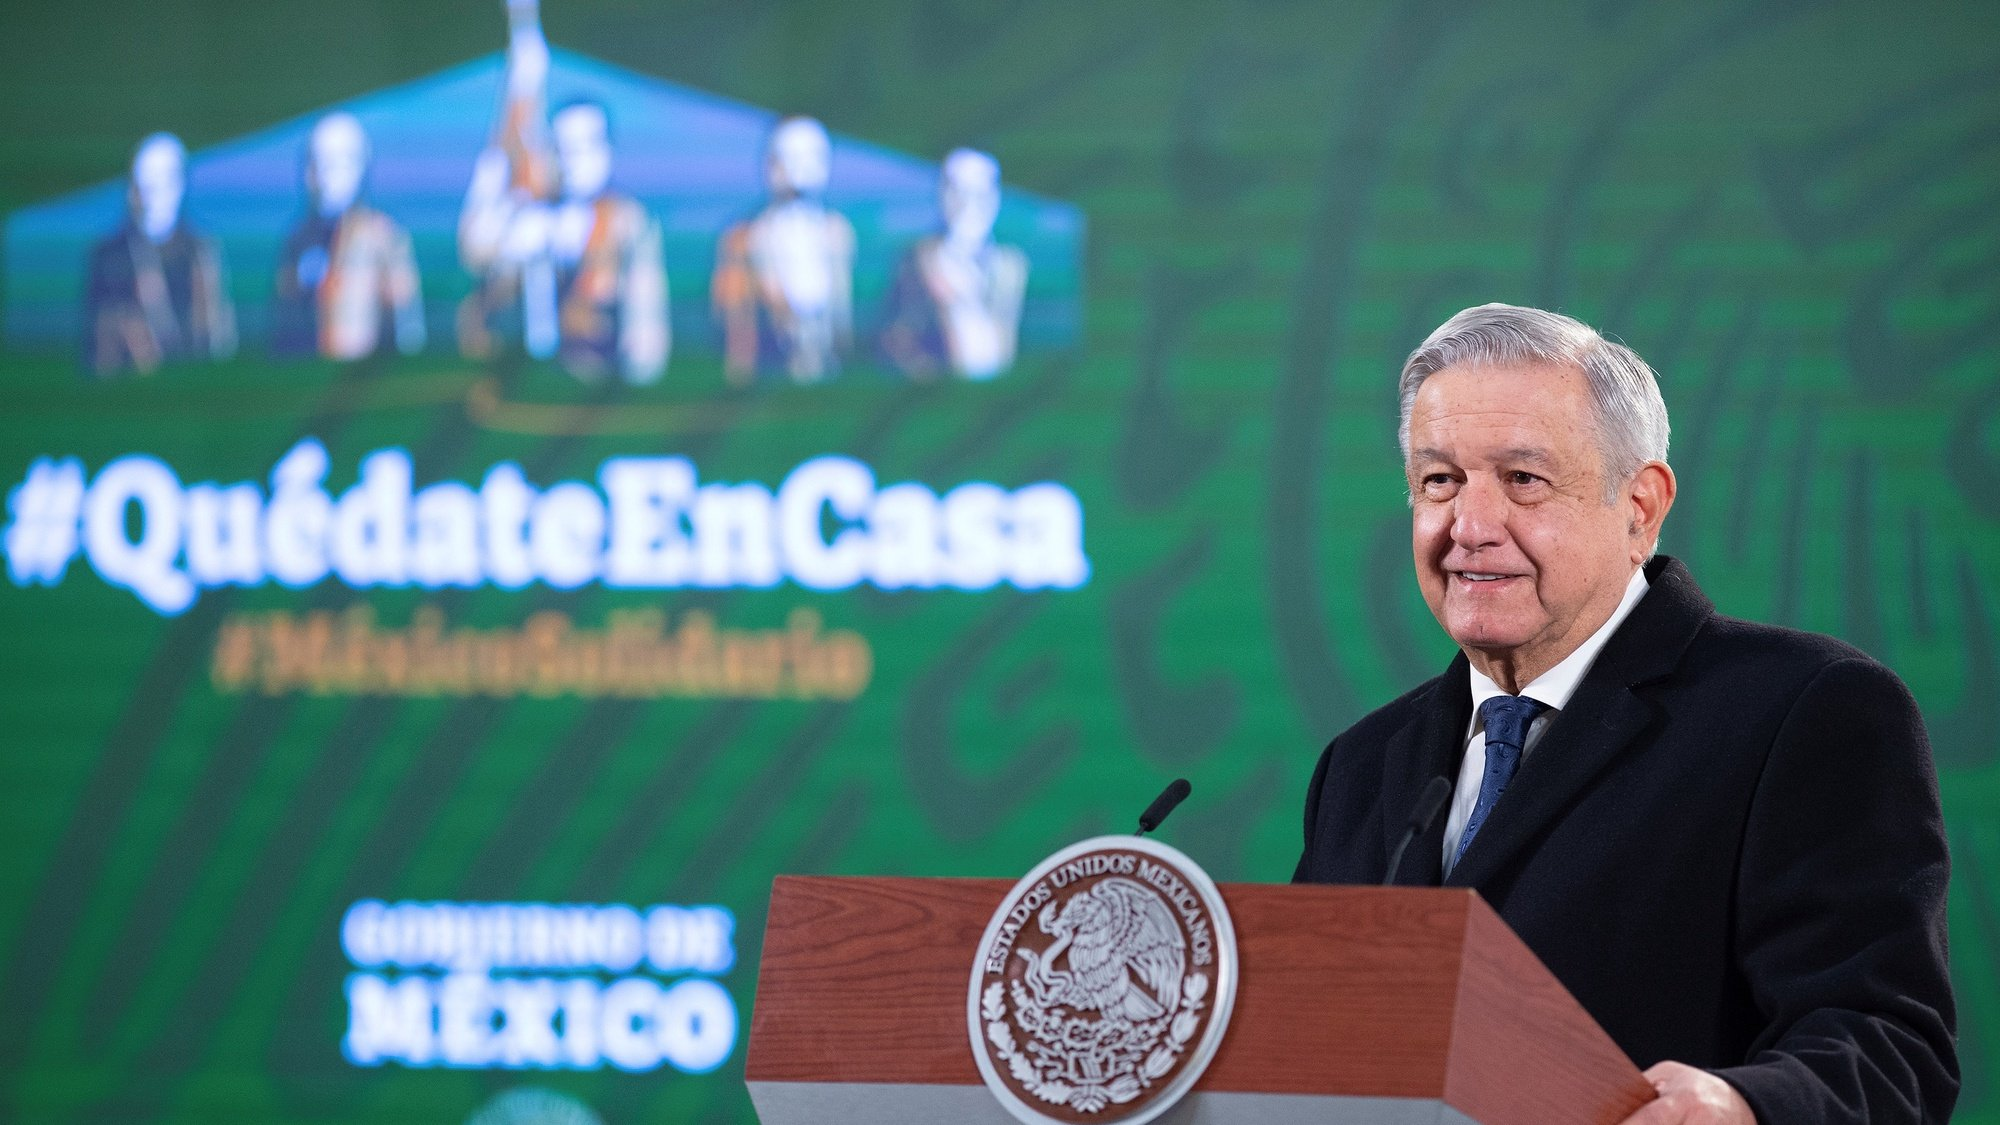 epa08926644 A handout photo made available by Mexico's Presidency shows President Andres Manuel Lopez Obrador during a press conference at the Palacio Nacional in Mexico City, Mexico, 08 January 2021. Lopez Obrador said the Government expects a shipment of the AstraZeneca vaccine, as the Russian vaccine Sputnik V is paying the protocol for the country's acceptance.  EPA/Mexico's Presidency / HANDOUT  HANDOUT EDITORIAL USE ONLY/NO SALES